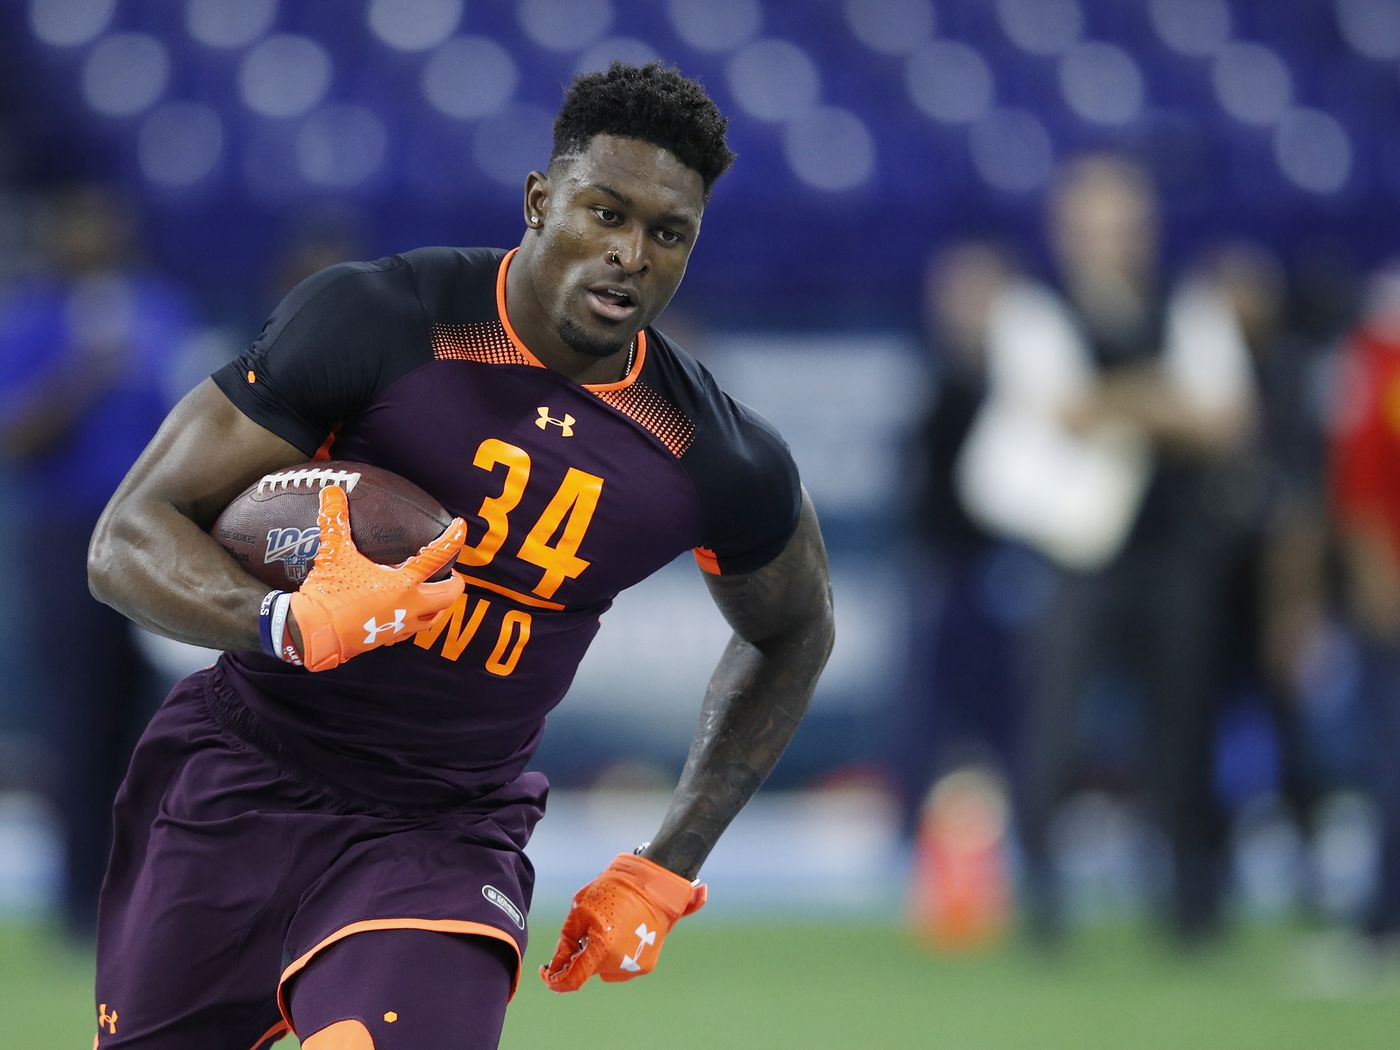 Nfl Combine Results D K Metcalf Offers Up A Crazy Split Of Highs And Lows Niners Nation